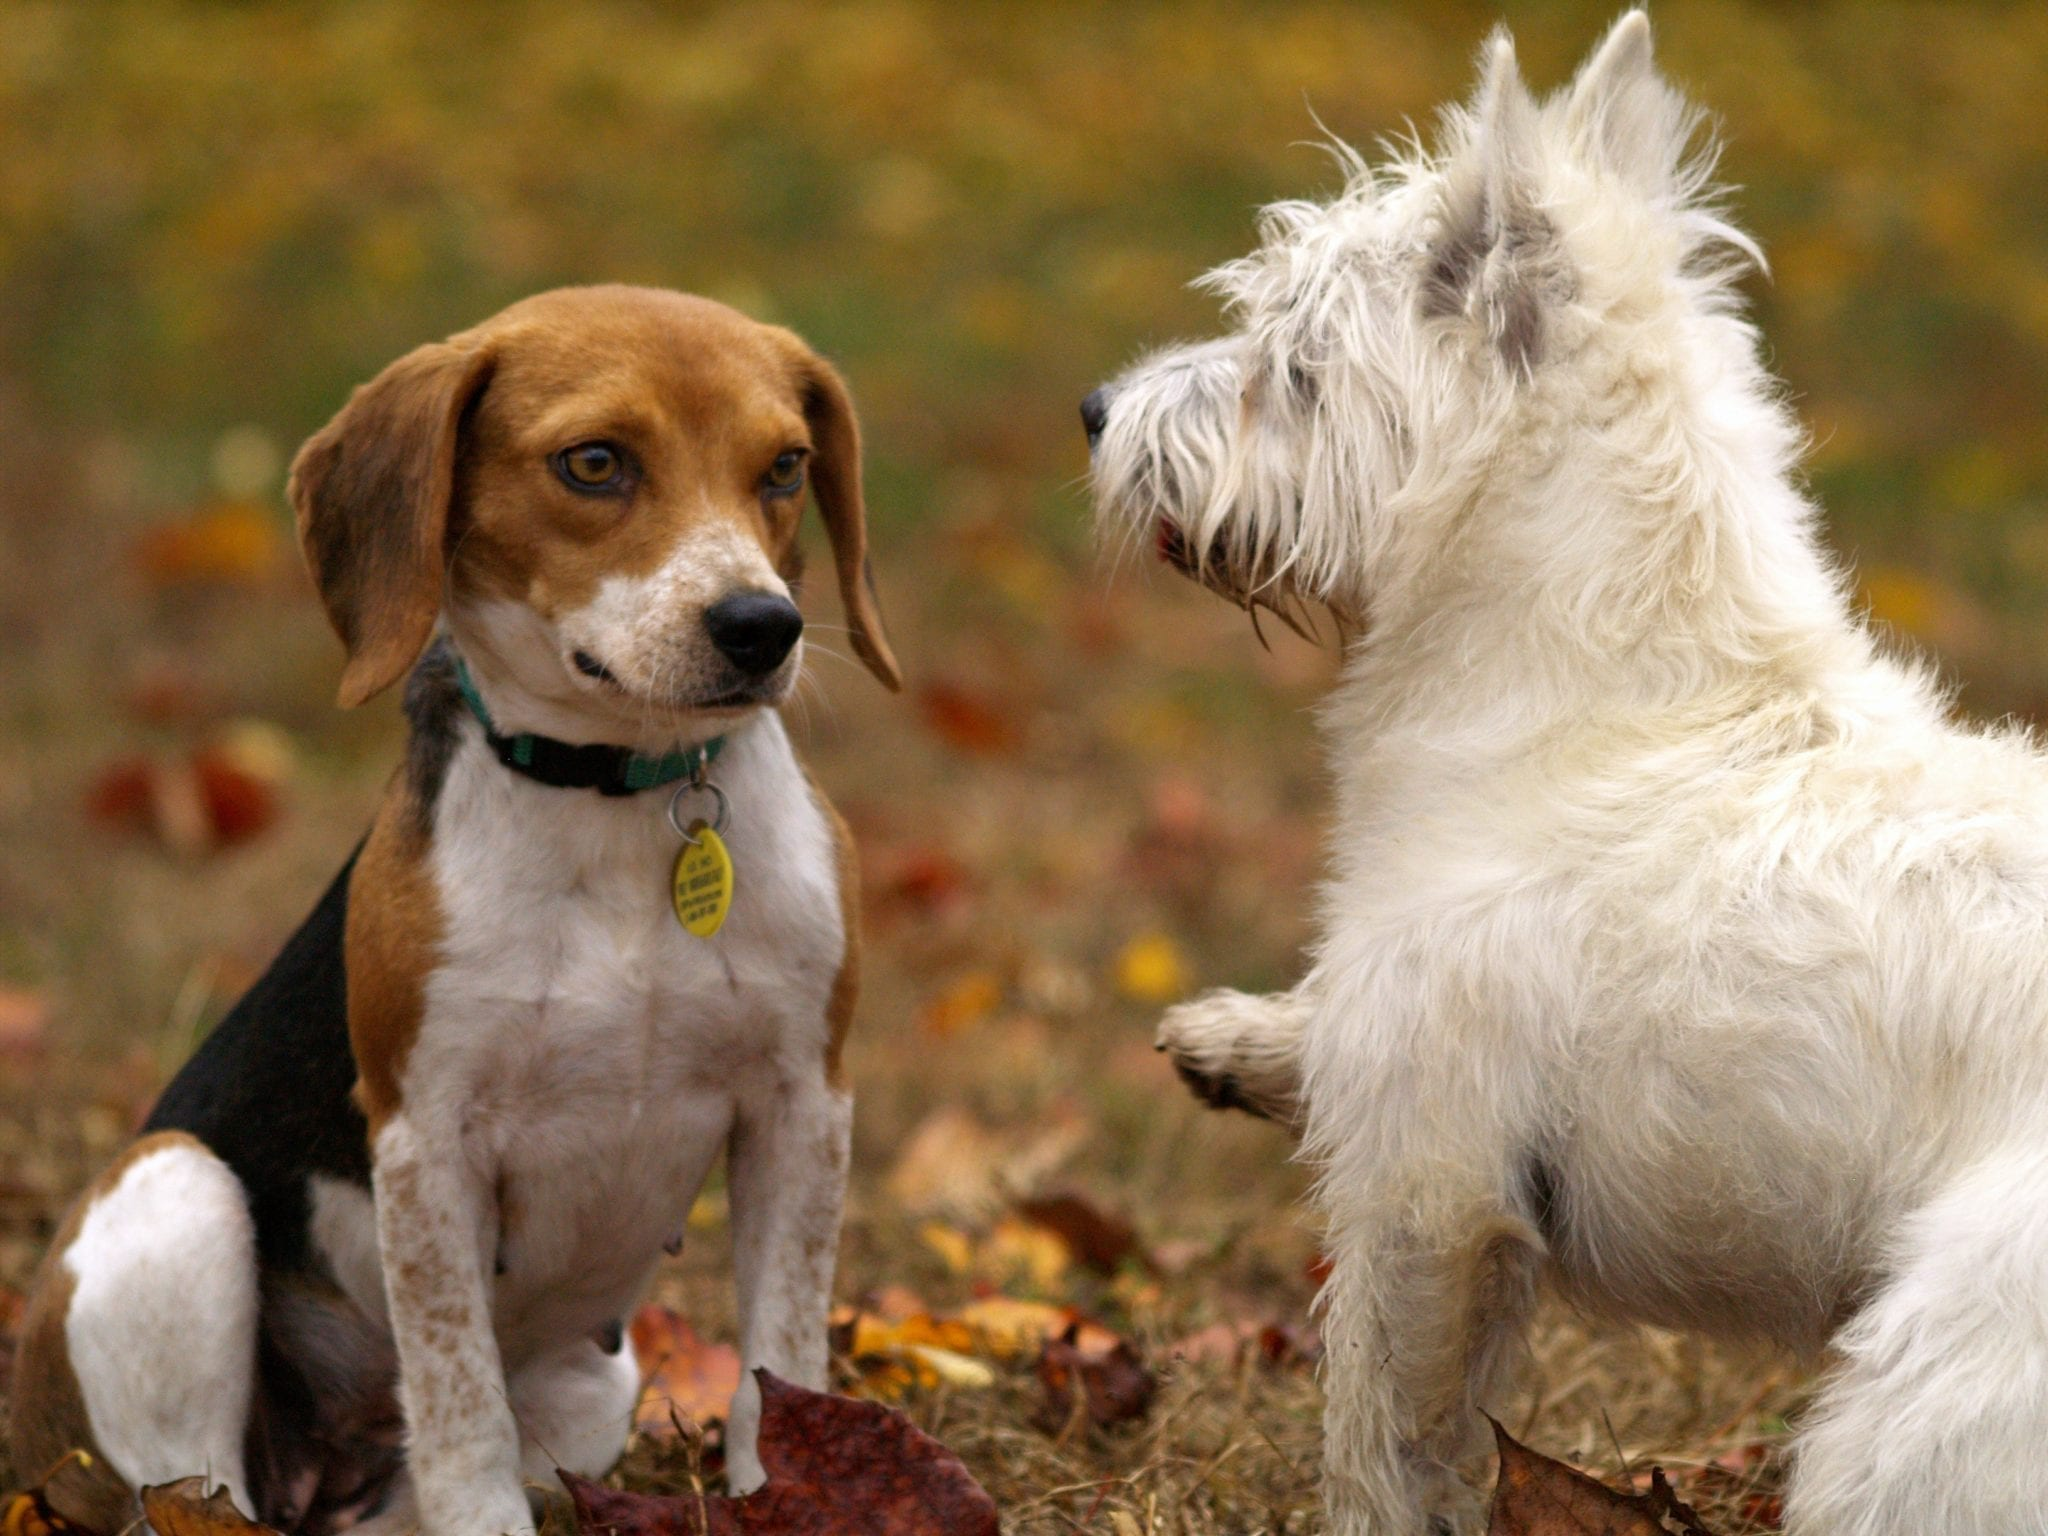 Puppy play groups teach dogs manners and self control